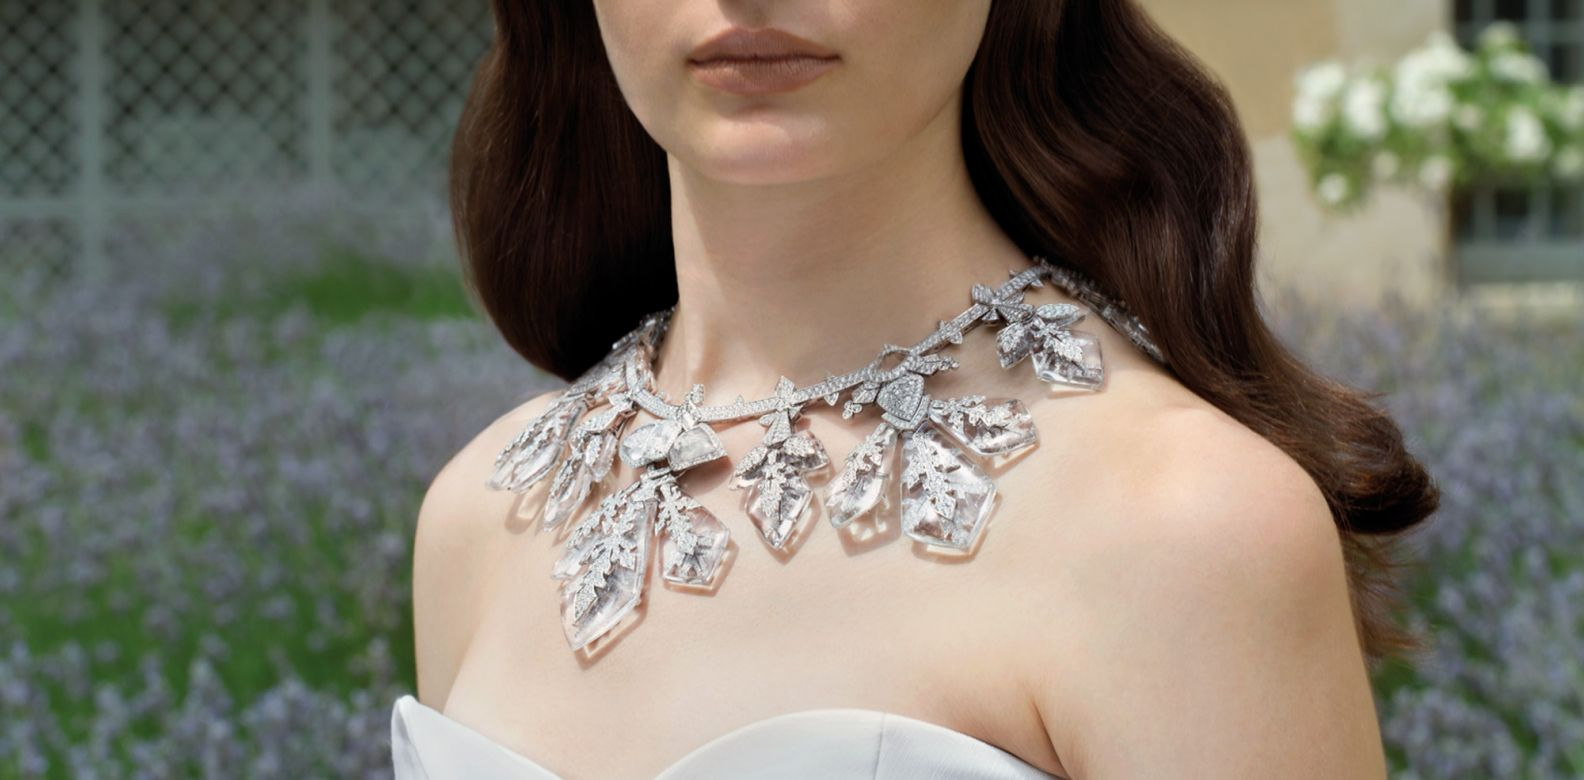 Flocon Impérial transformable necklace in white gold set with diamonds and rock crystal, by Boucheron; top by Lanvin